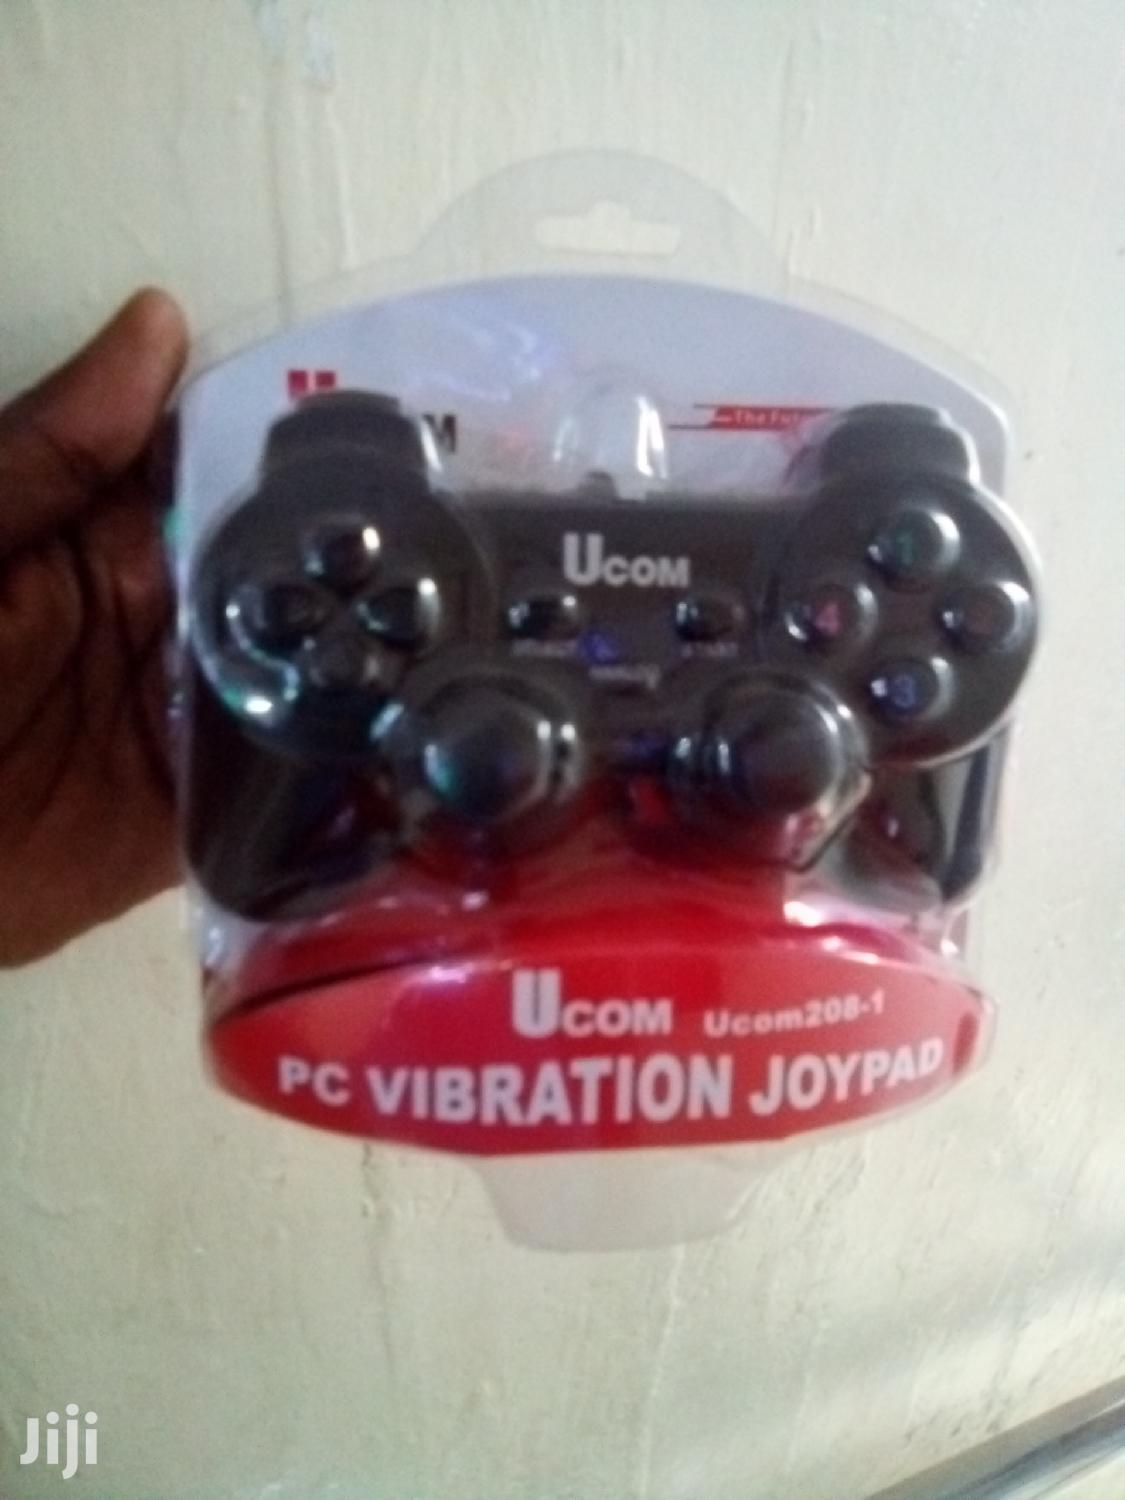 Pc Vibration Joypad